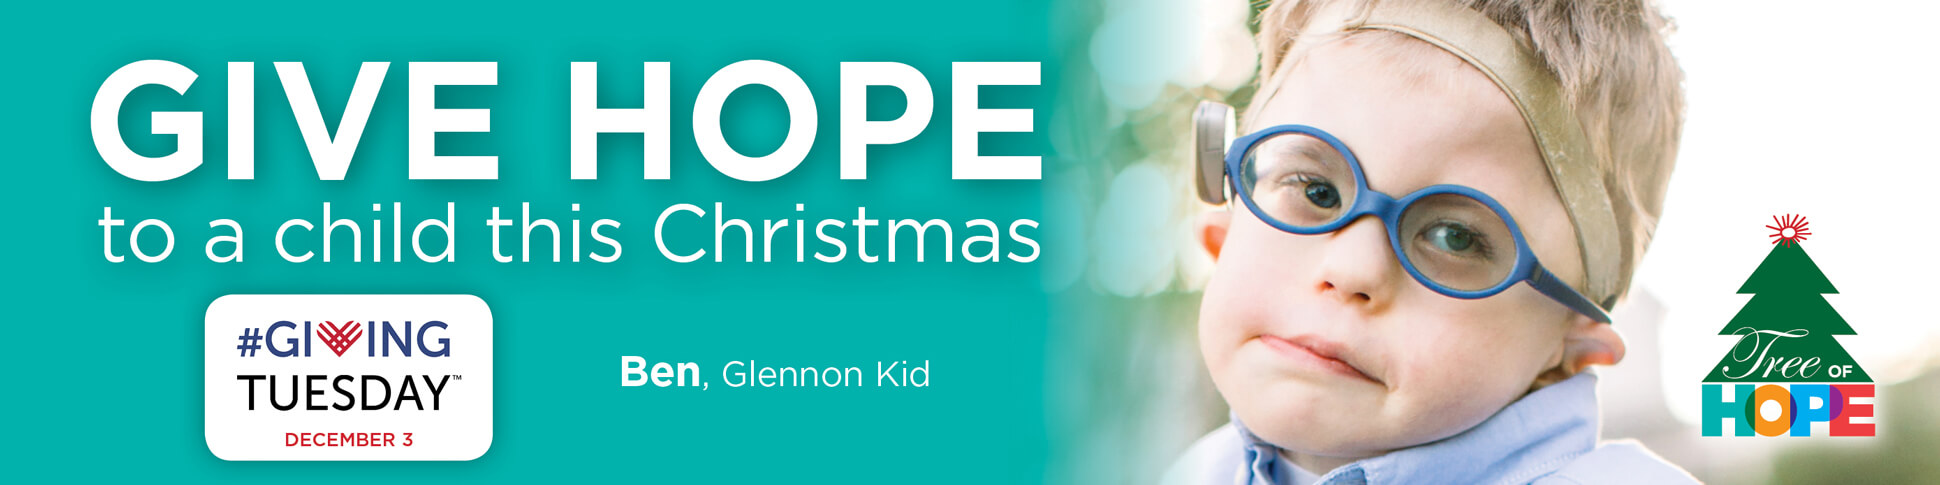 #GivingTuesday - Give hope to a child at Cardinal Glennon through the Tree of Hope